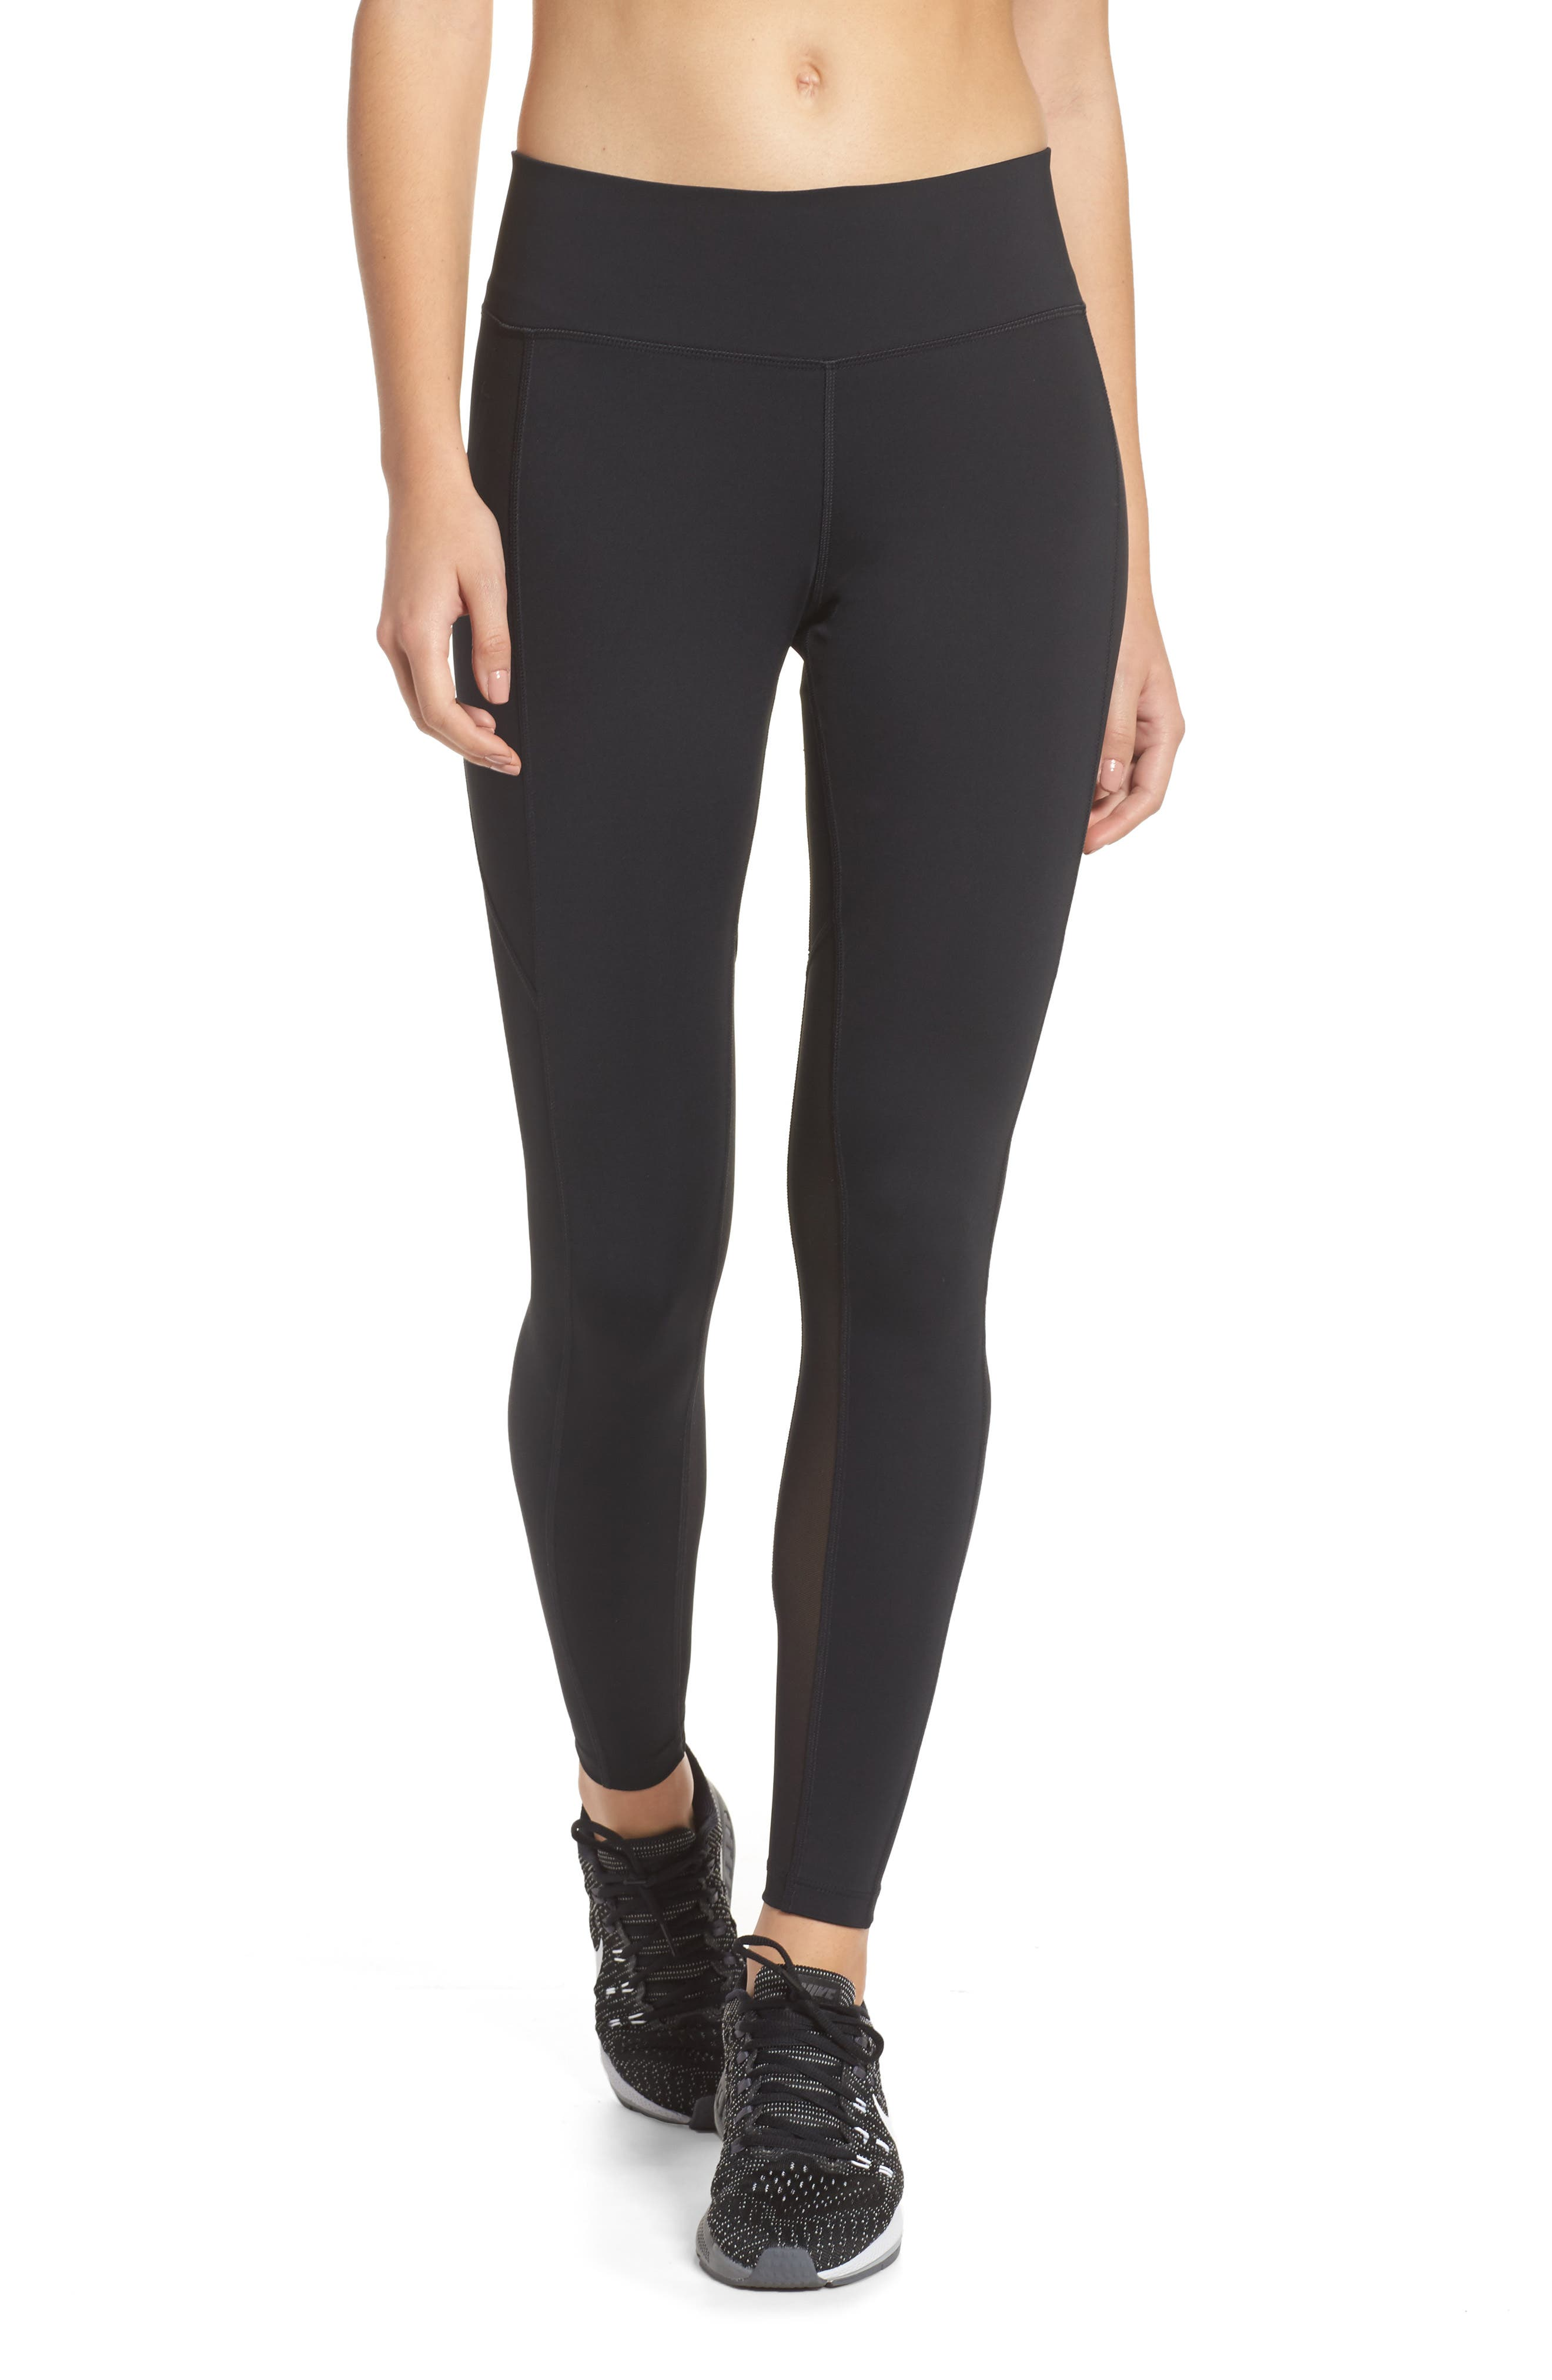 Power Pocket Lux Ankle Tights,                         Main,                         color, BLACK/ BLACK/ CLEAR